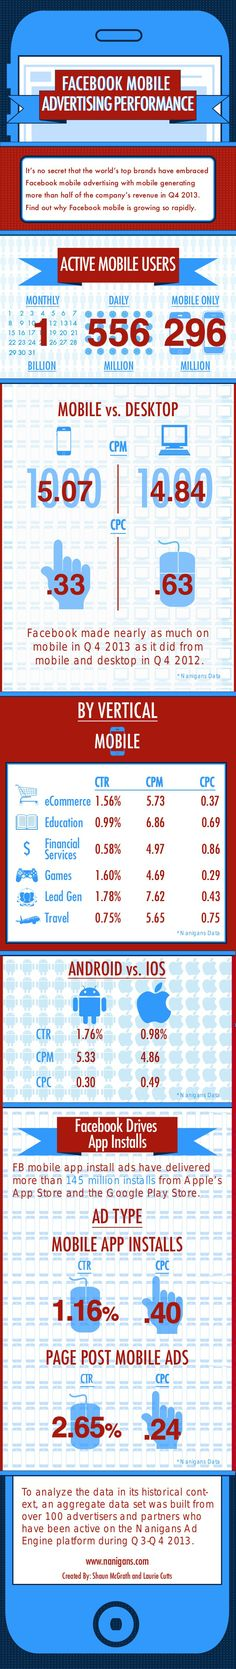 FaceBook mobile advertising performance #infographic